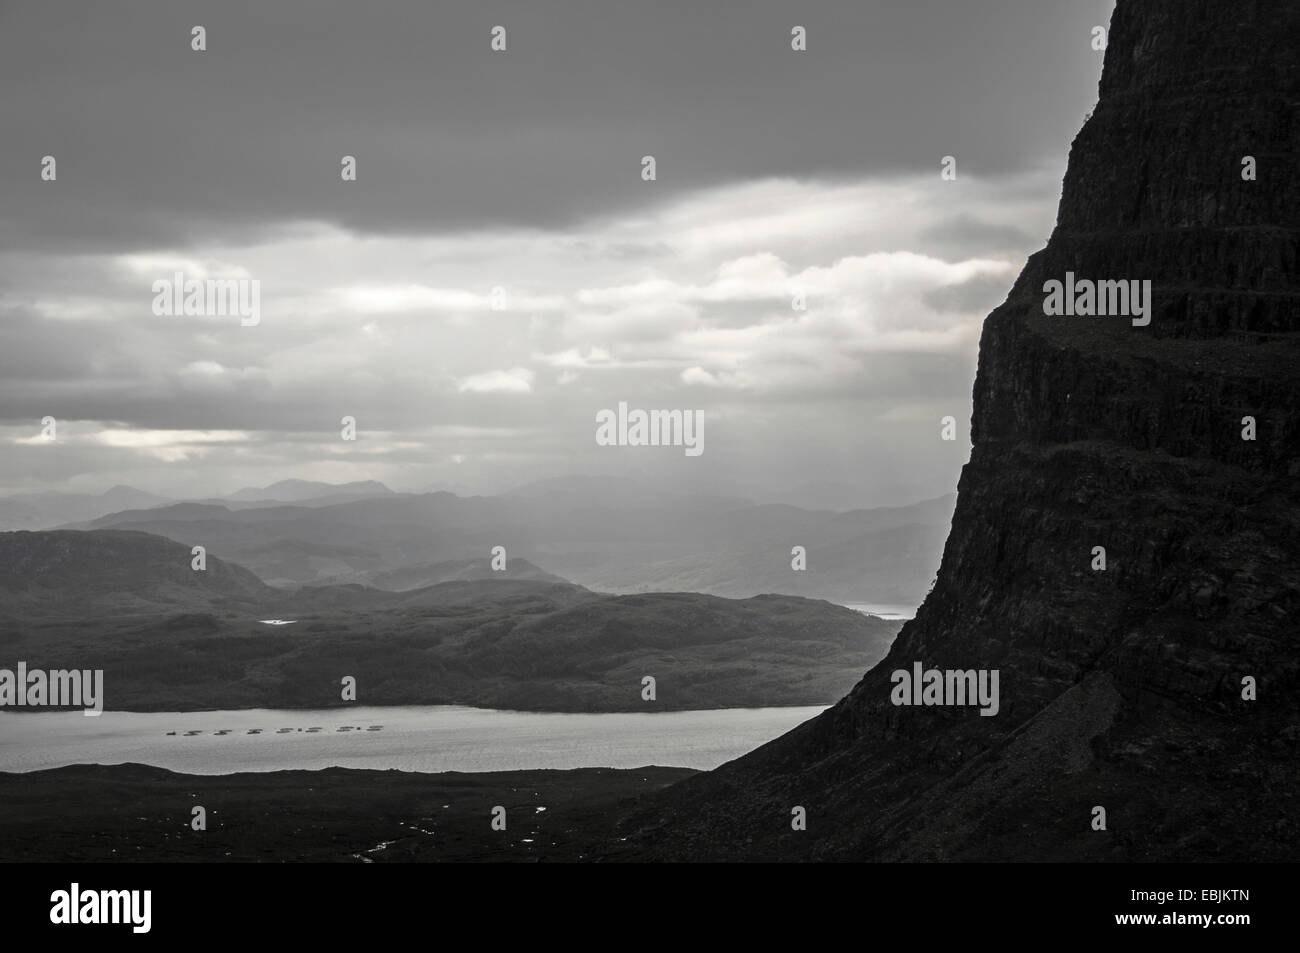 Steep Scottish cliff and scenery in mists, United Kingdom, Scotland, Argyll, Wester Ross Region - Stock Image